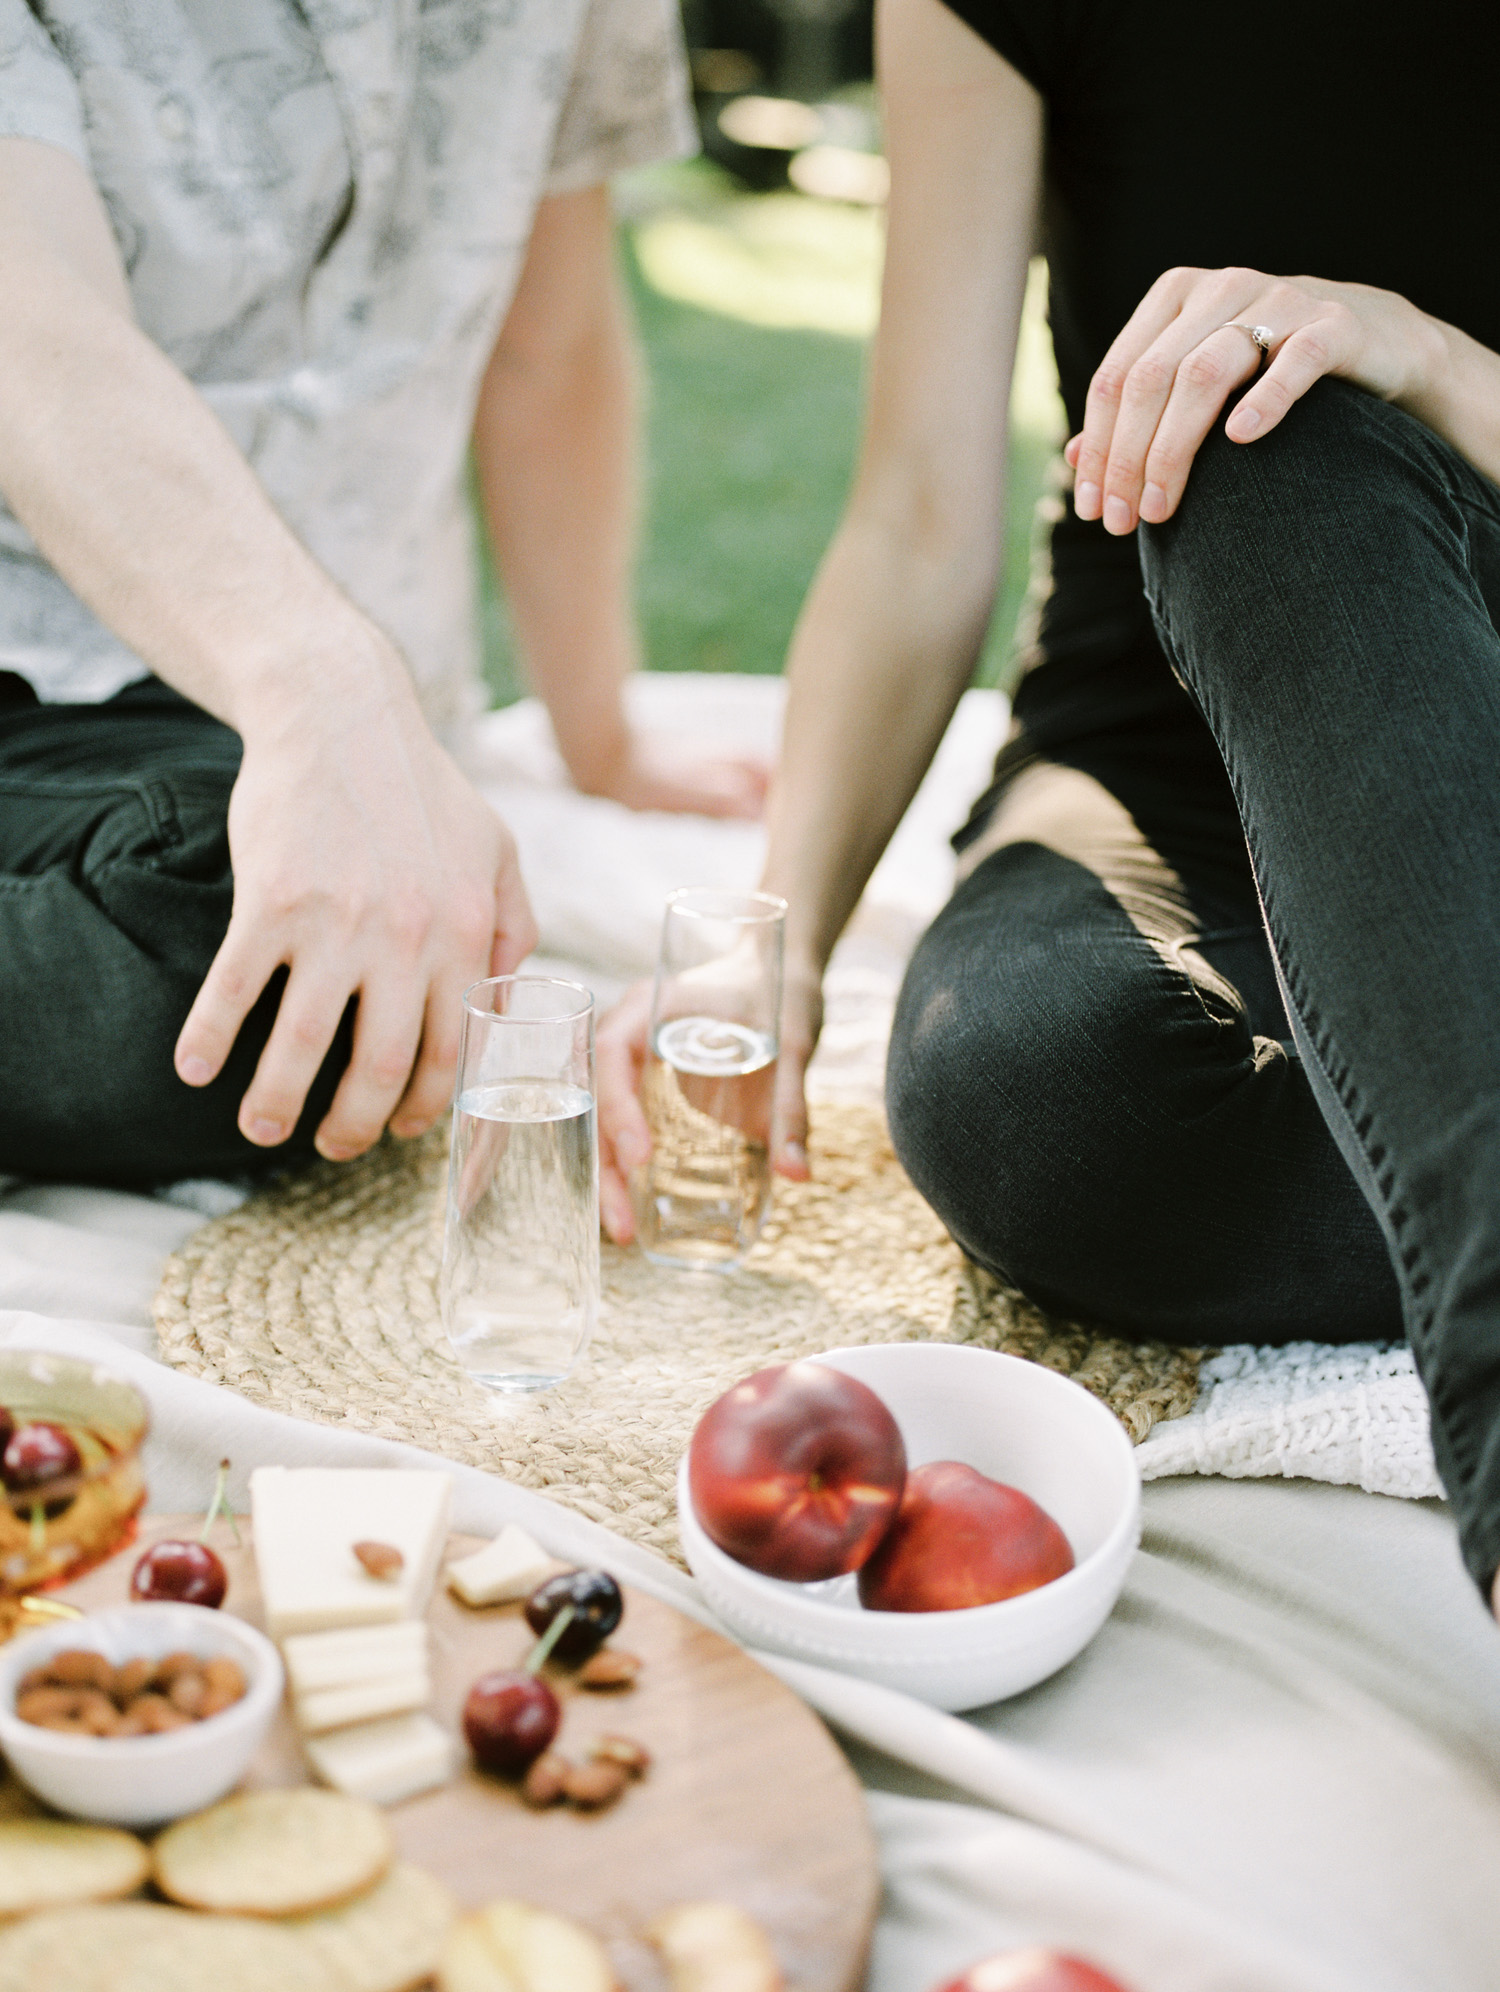 A couple's hands reach for their drinks during a vegan charcuterie picnic at their Detroit at home photo session